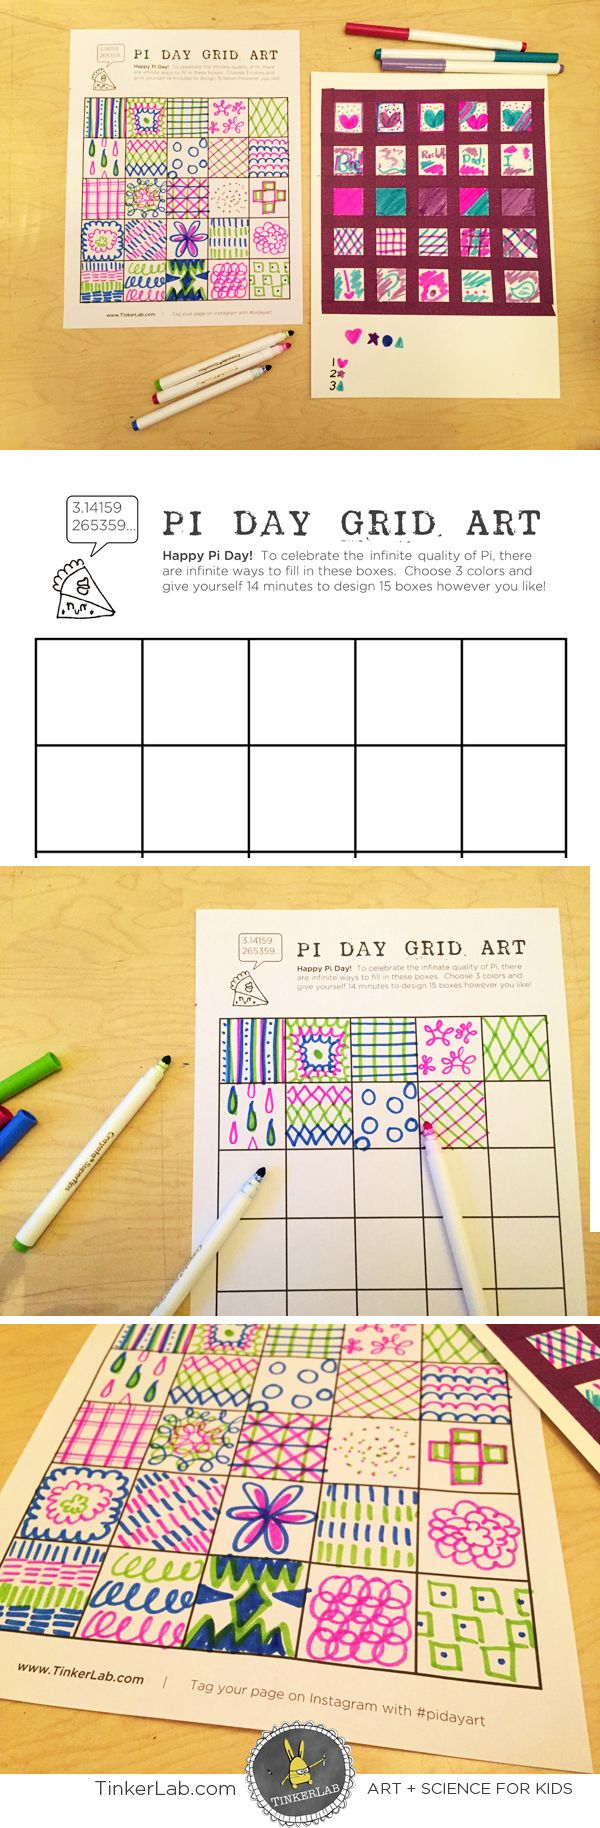 This fun and easy Pi Day Art Activity will get your creativity flowing, and it's a fun way to build enthusiasm around Pi Day 2015 | TinkerLab.com